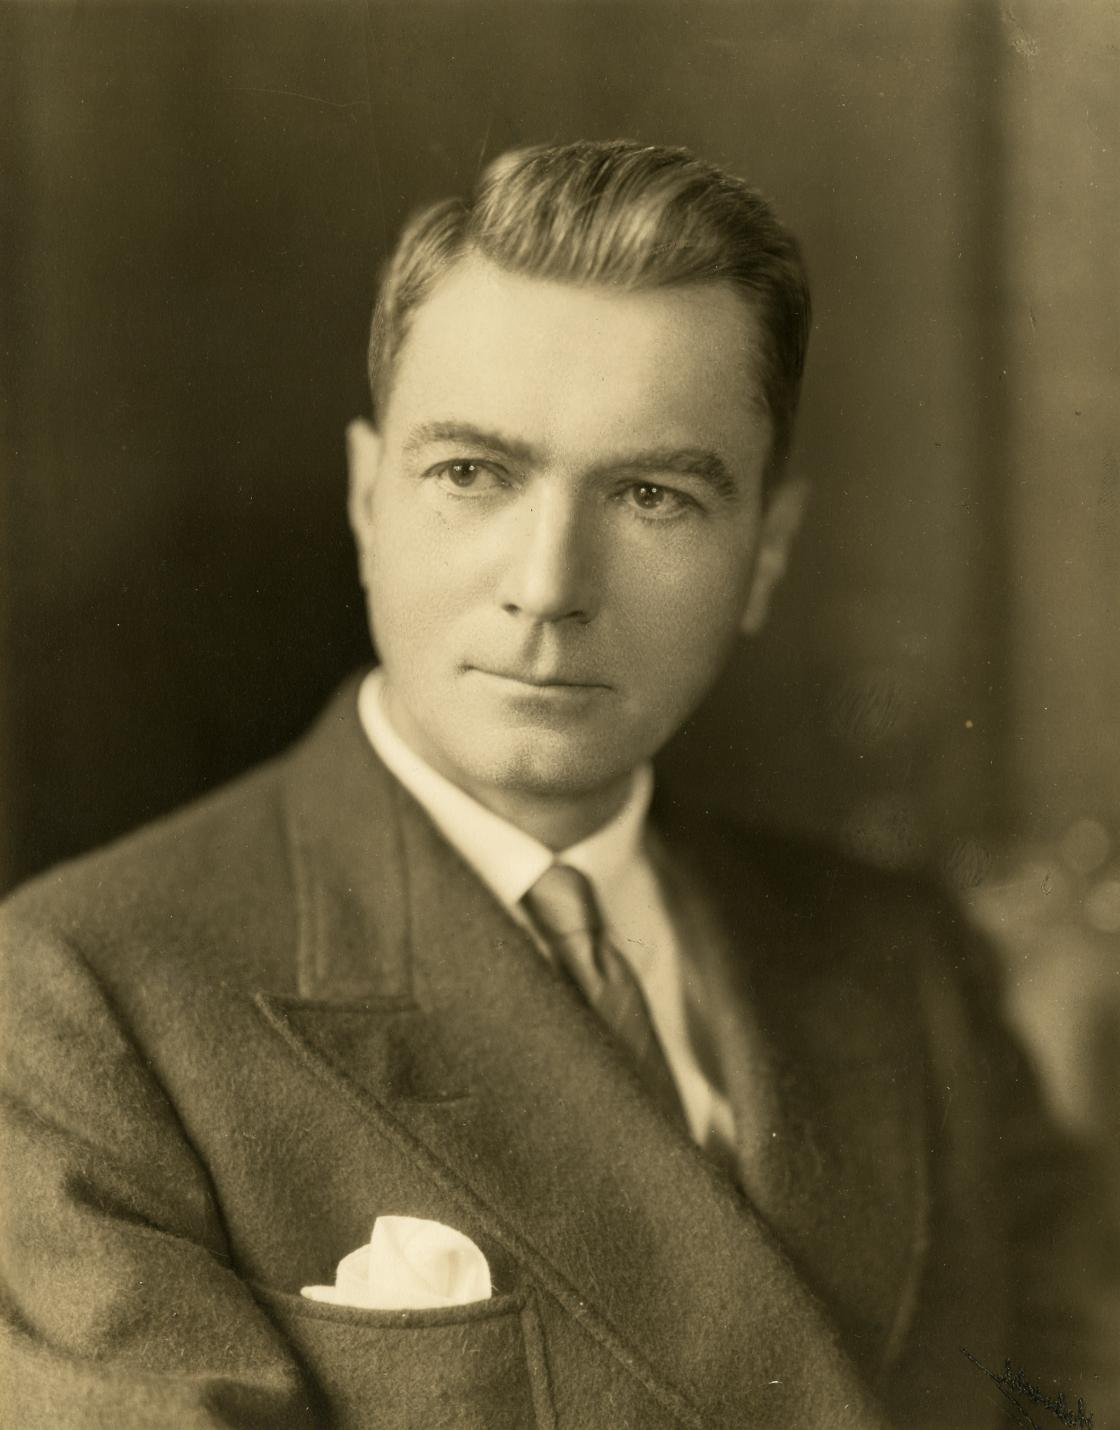 William O. Stevens